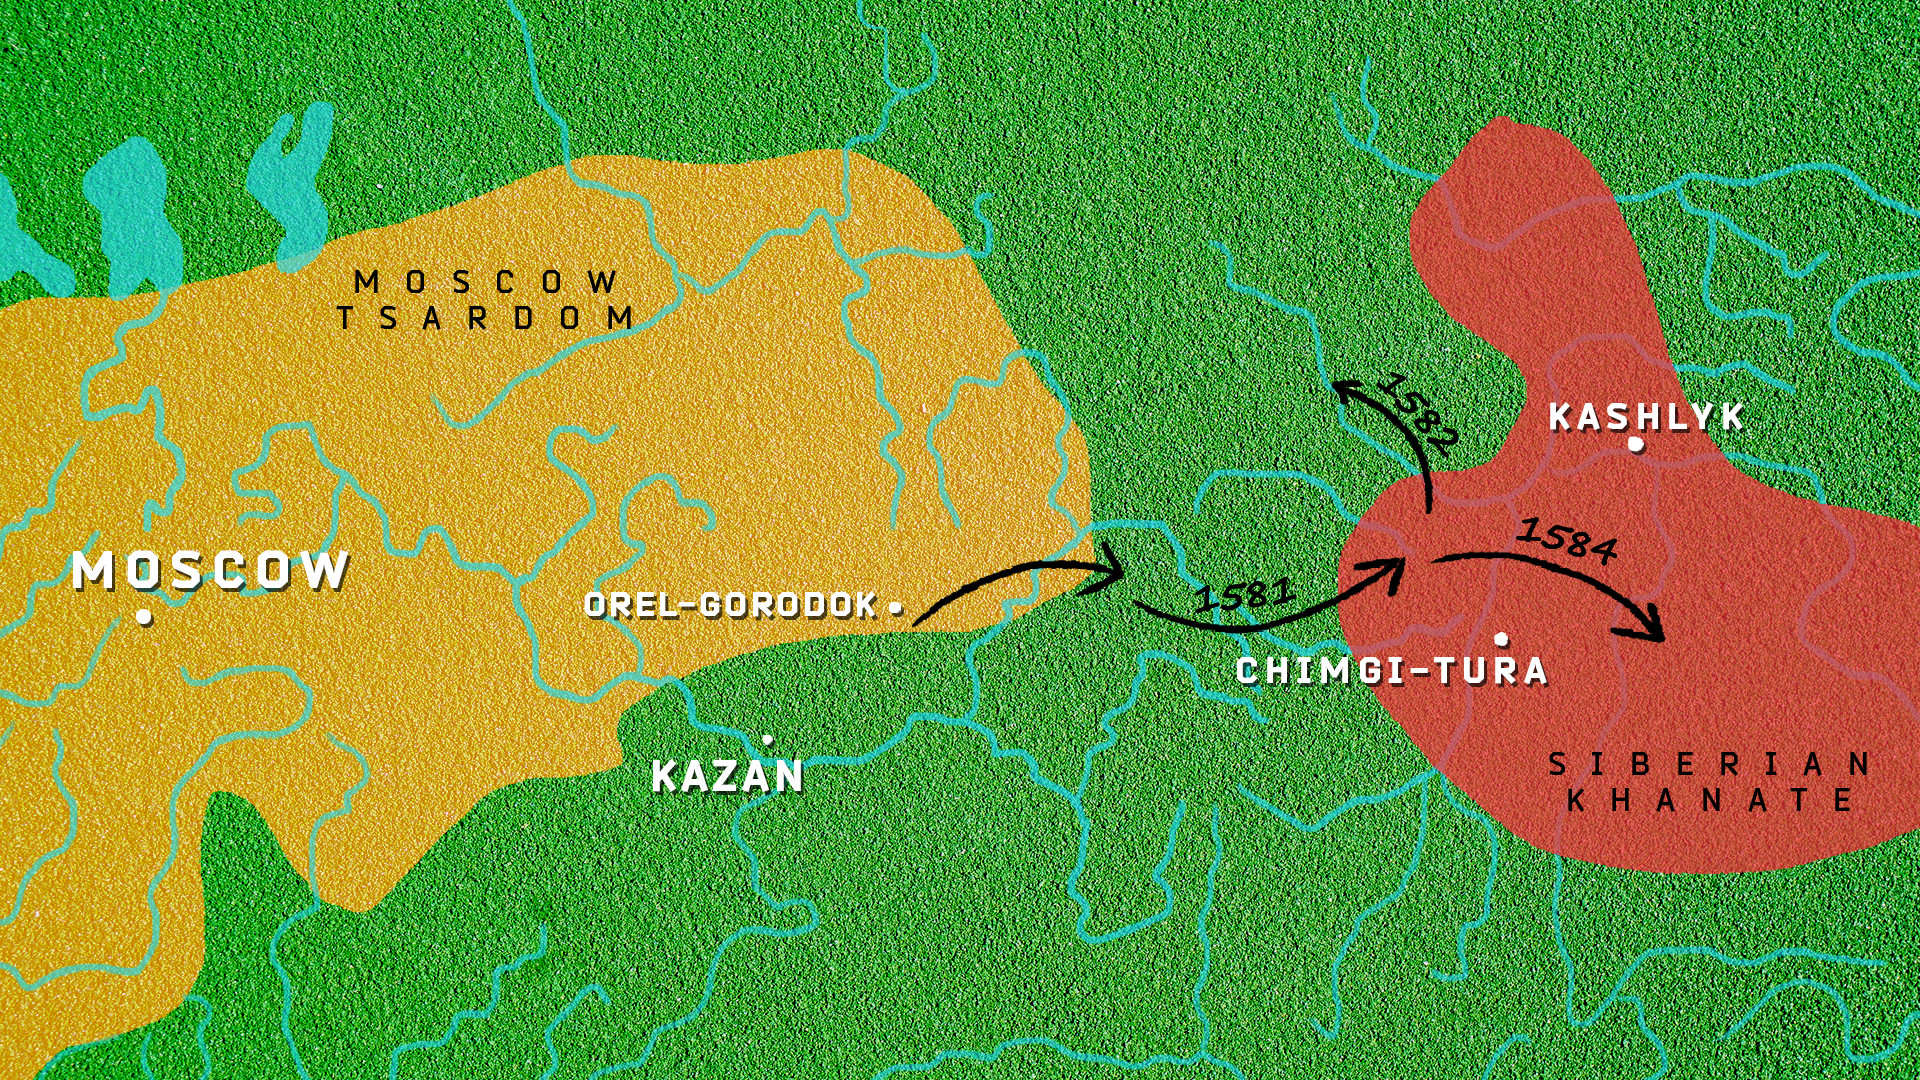 Map of the Moscow Tsardom compared to the Siberian Khanate. Black arrows indicate the approximate route of Yermak's army.